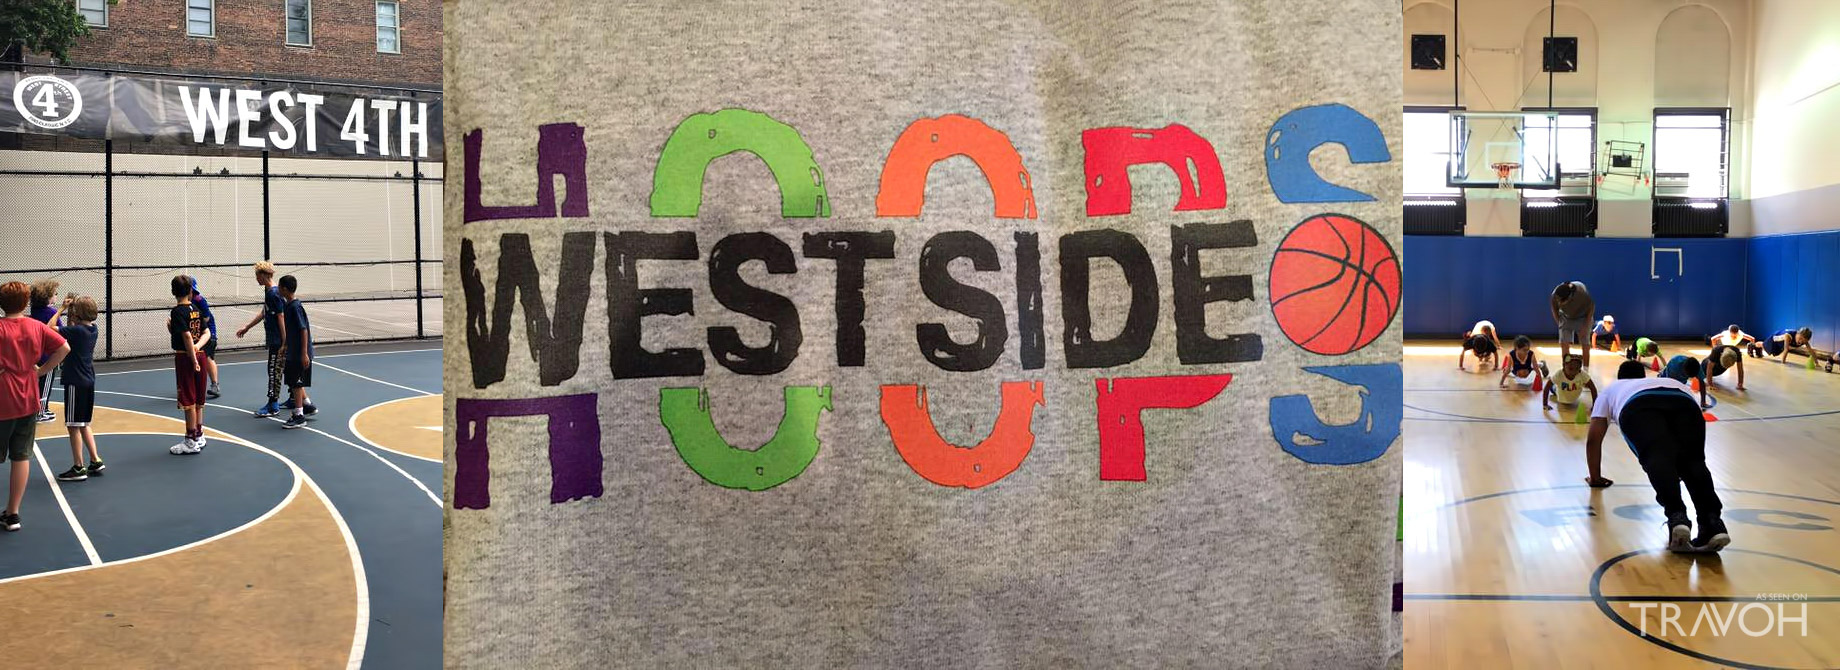 West Side Hoops - 2020 Broadway, New York, NY 10023, USA